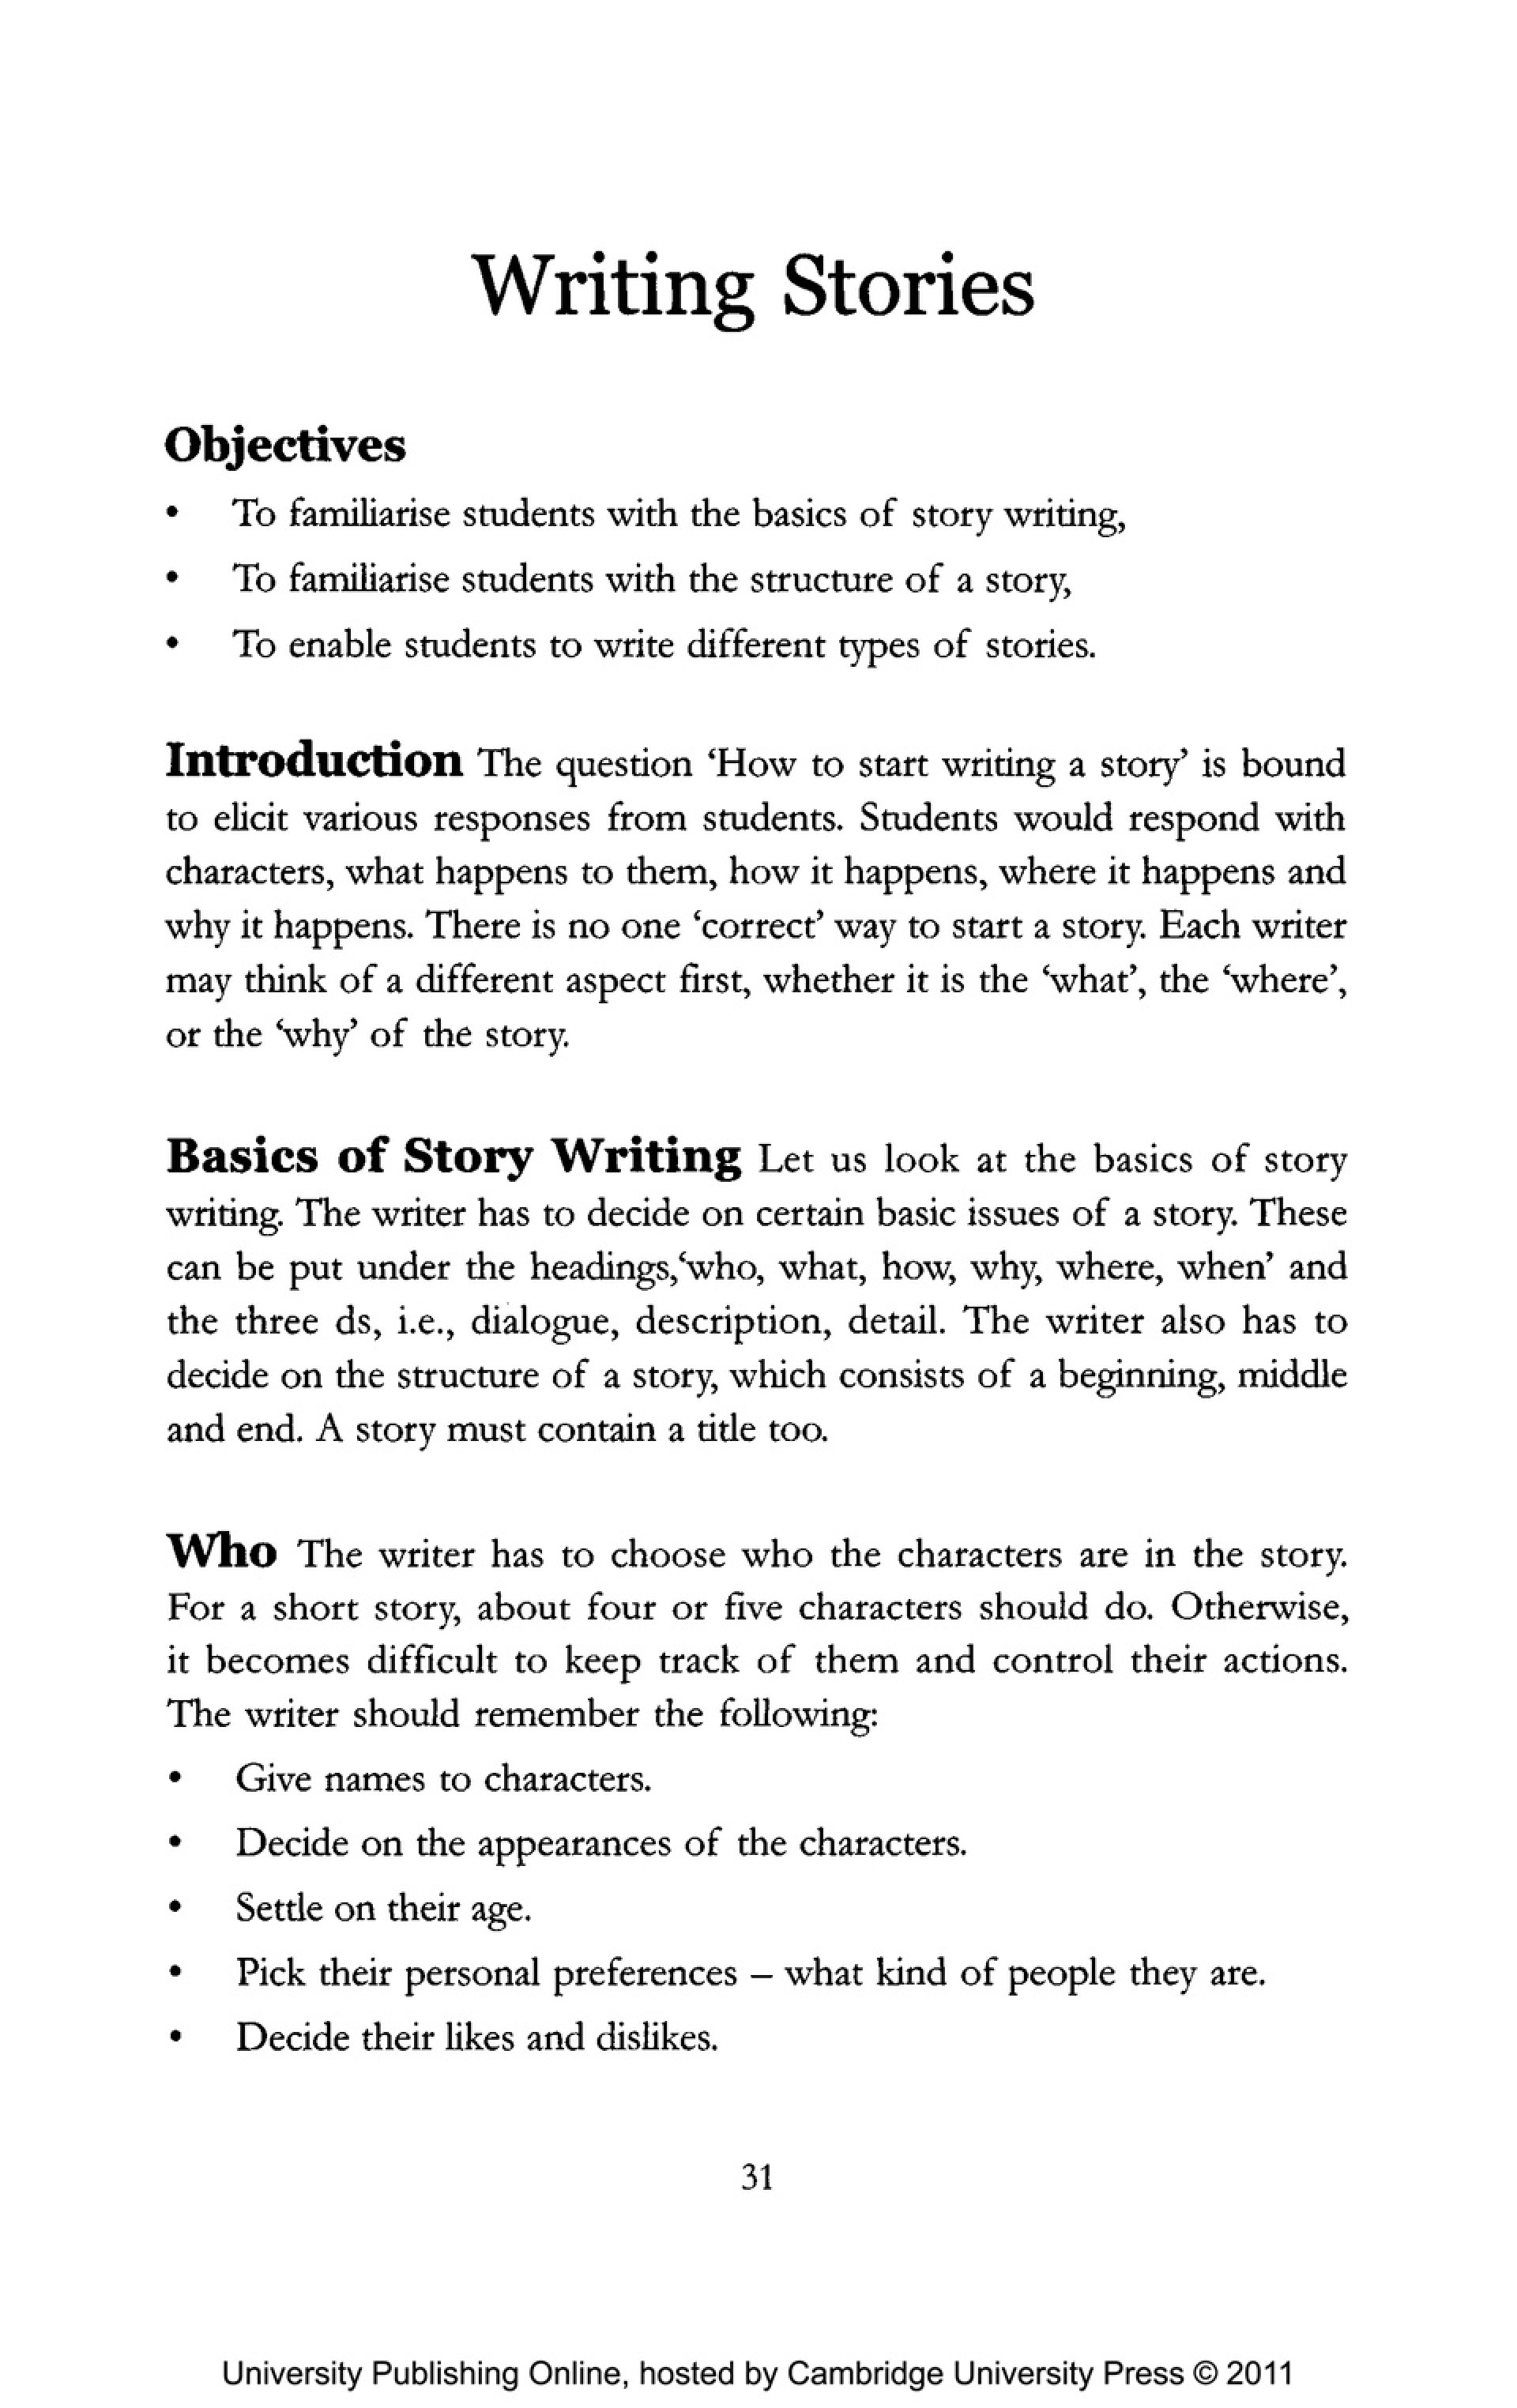 015 Short Stories In Essays Essay Example Dialogue Write Story How To Sample Research Paper 9788175968714c2 Abstrac Comparison An Introduction For Title Good Conclusion The Of Impressive Analysis Examples And One Act Plays Fiction 1920